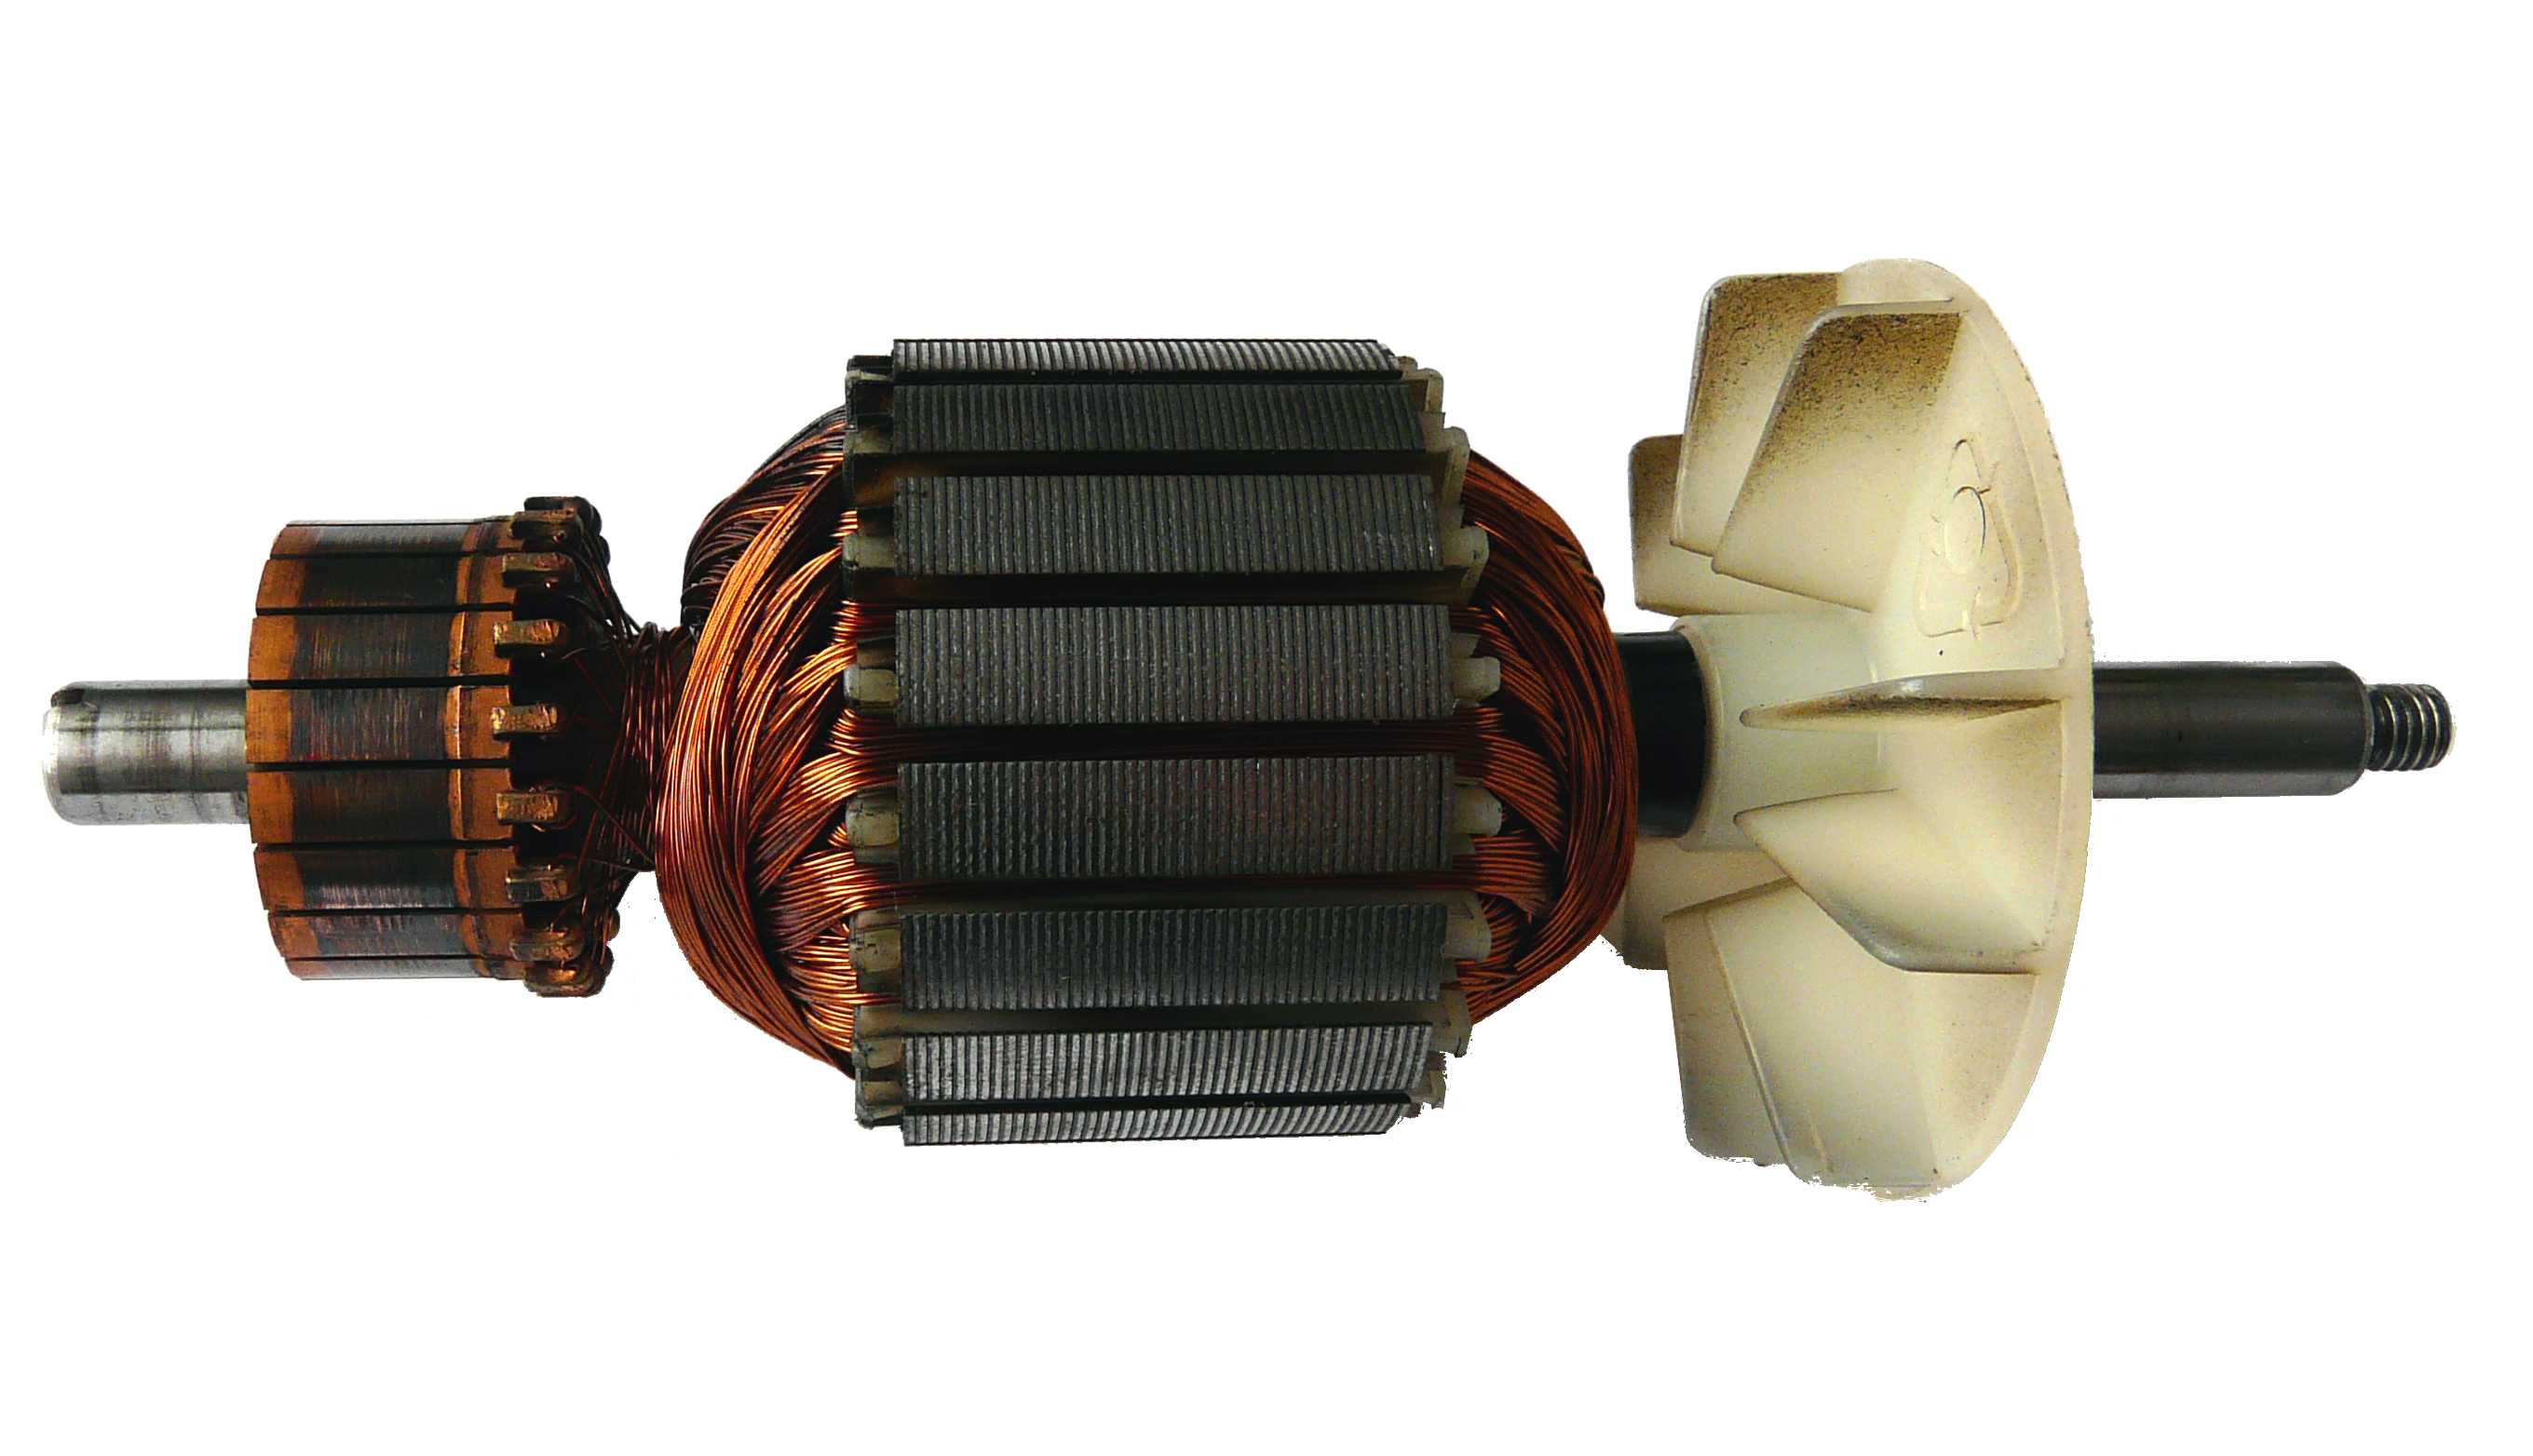 Rotor Png - File:Engine rotor.png - Wikimedia Commons